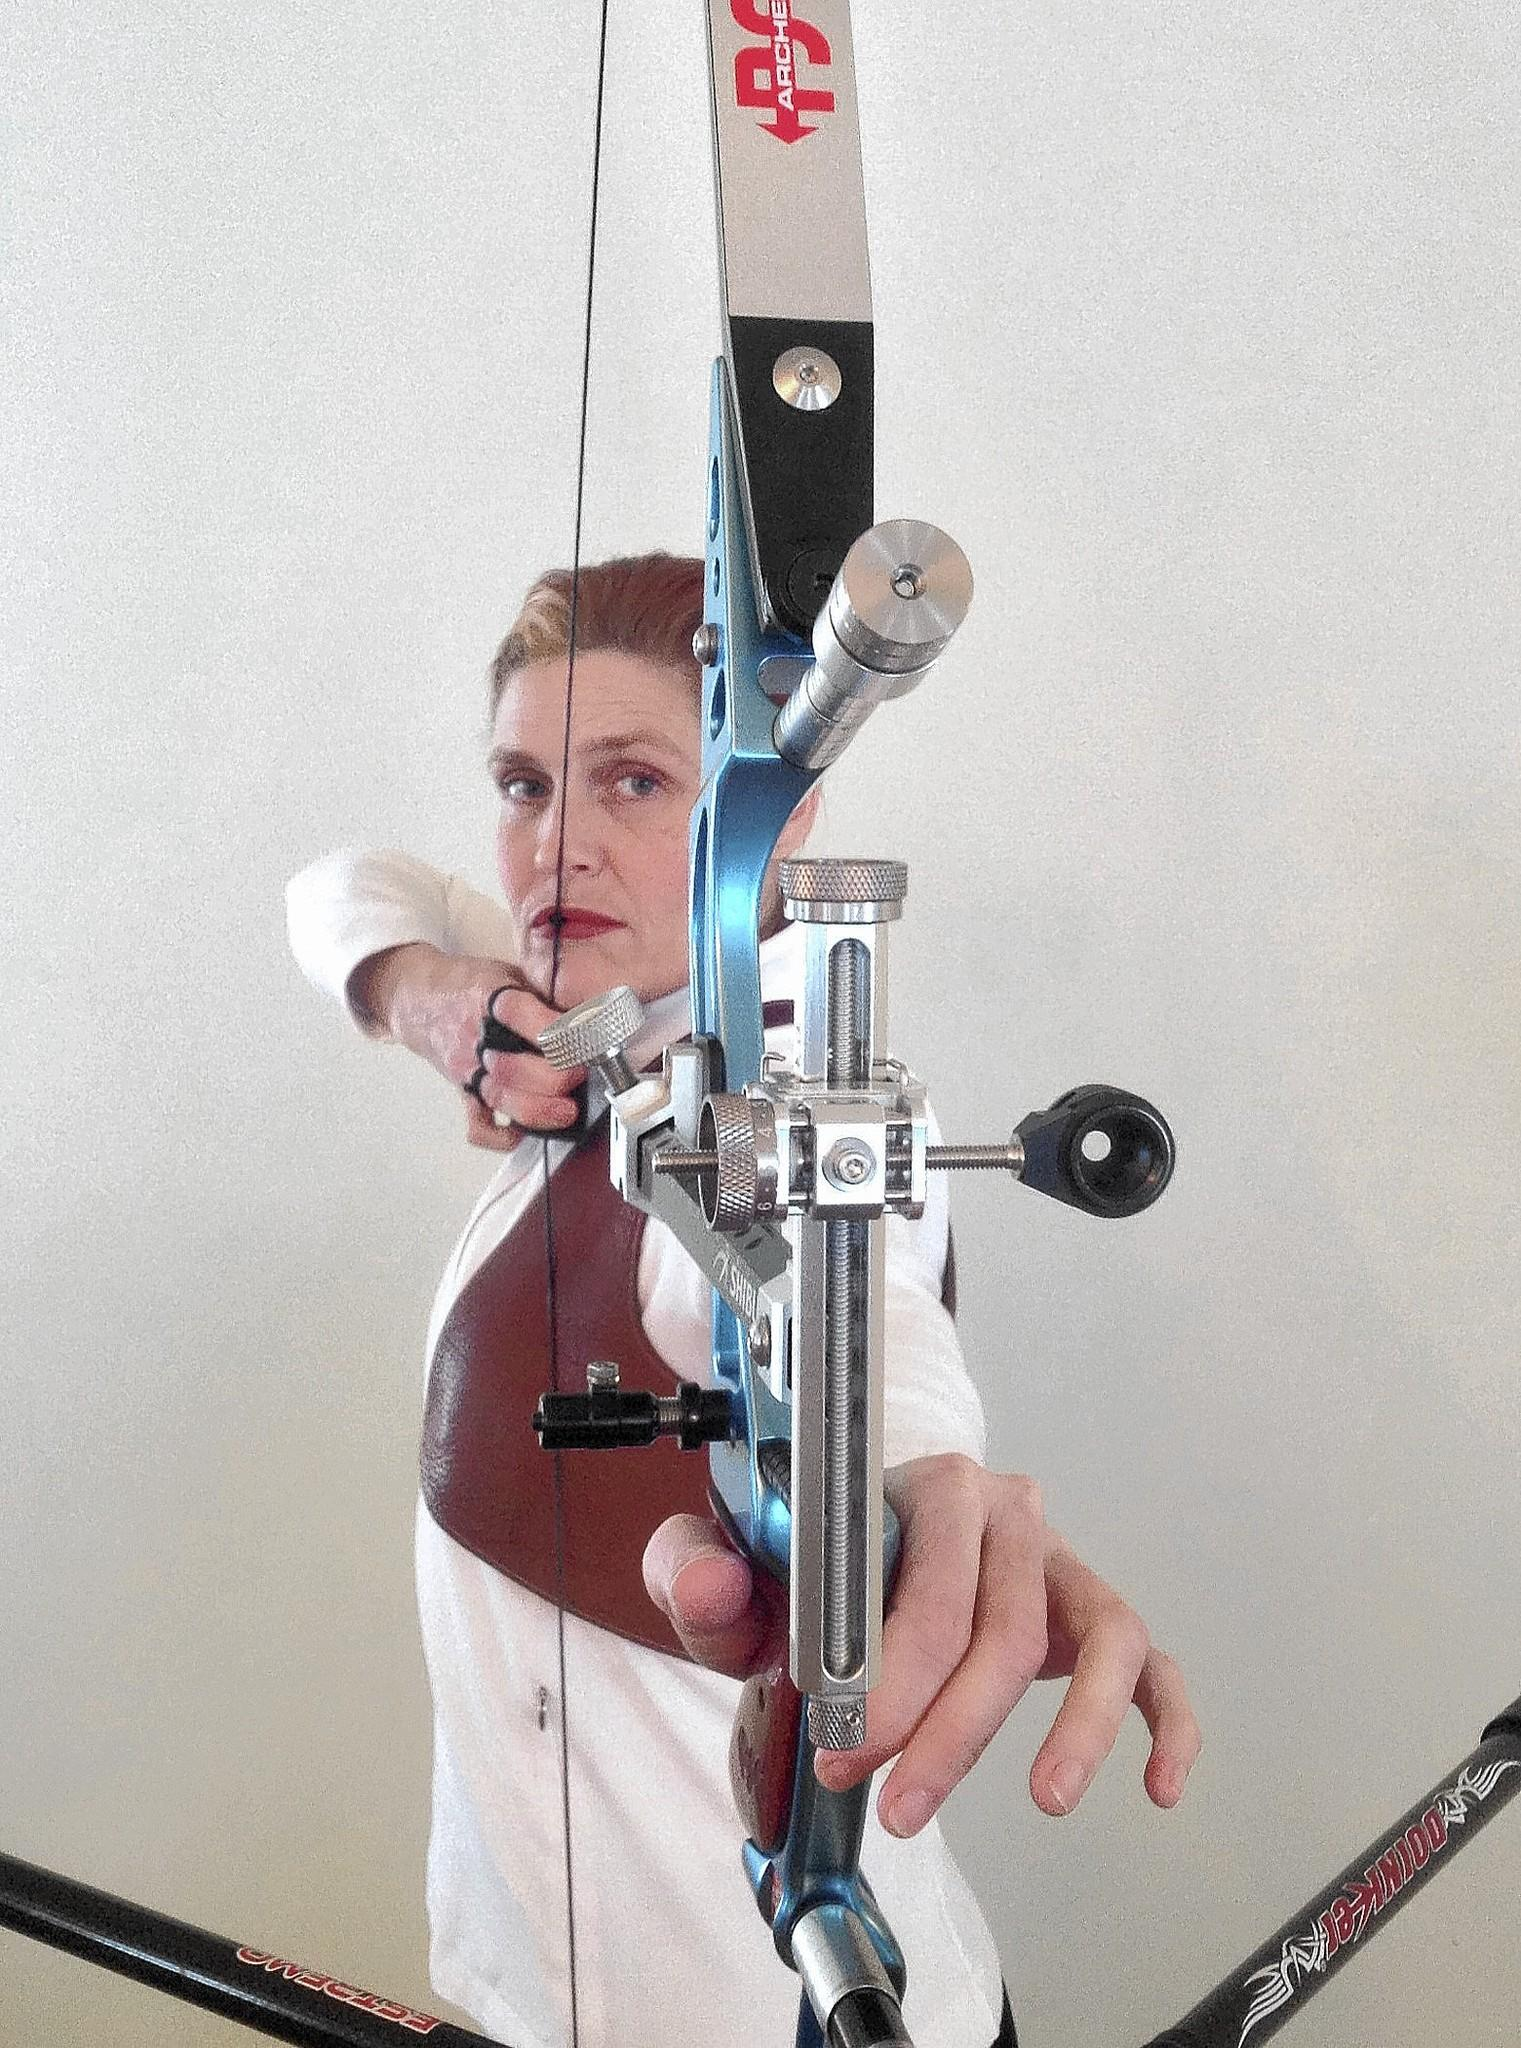 Laura Bennett Shelton takes aim with her recurve bow. The 50-year-old Bethlehem woman took up archery in August and progressed so rapidly that she is shooting for the u.S. at the World Indoor Archery Championships in France this week.